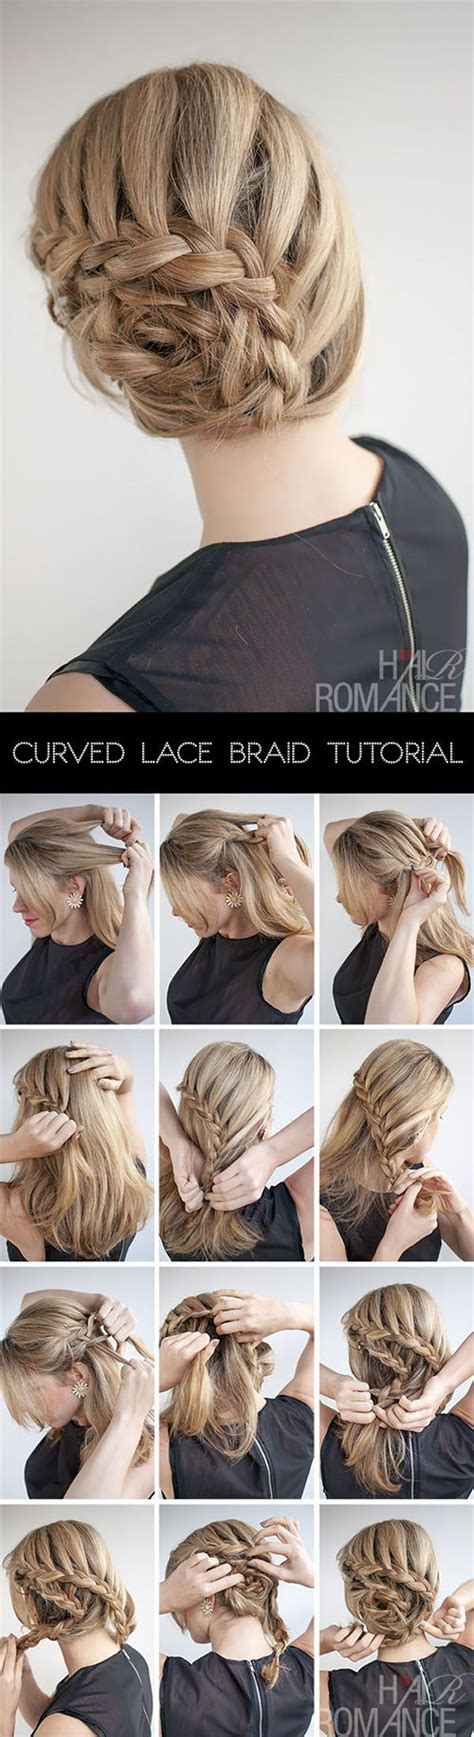 easy hairstyles for step by step 20 easy step by step summer braids style tutorials for beginners 2015 modern fashion